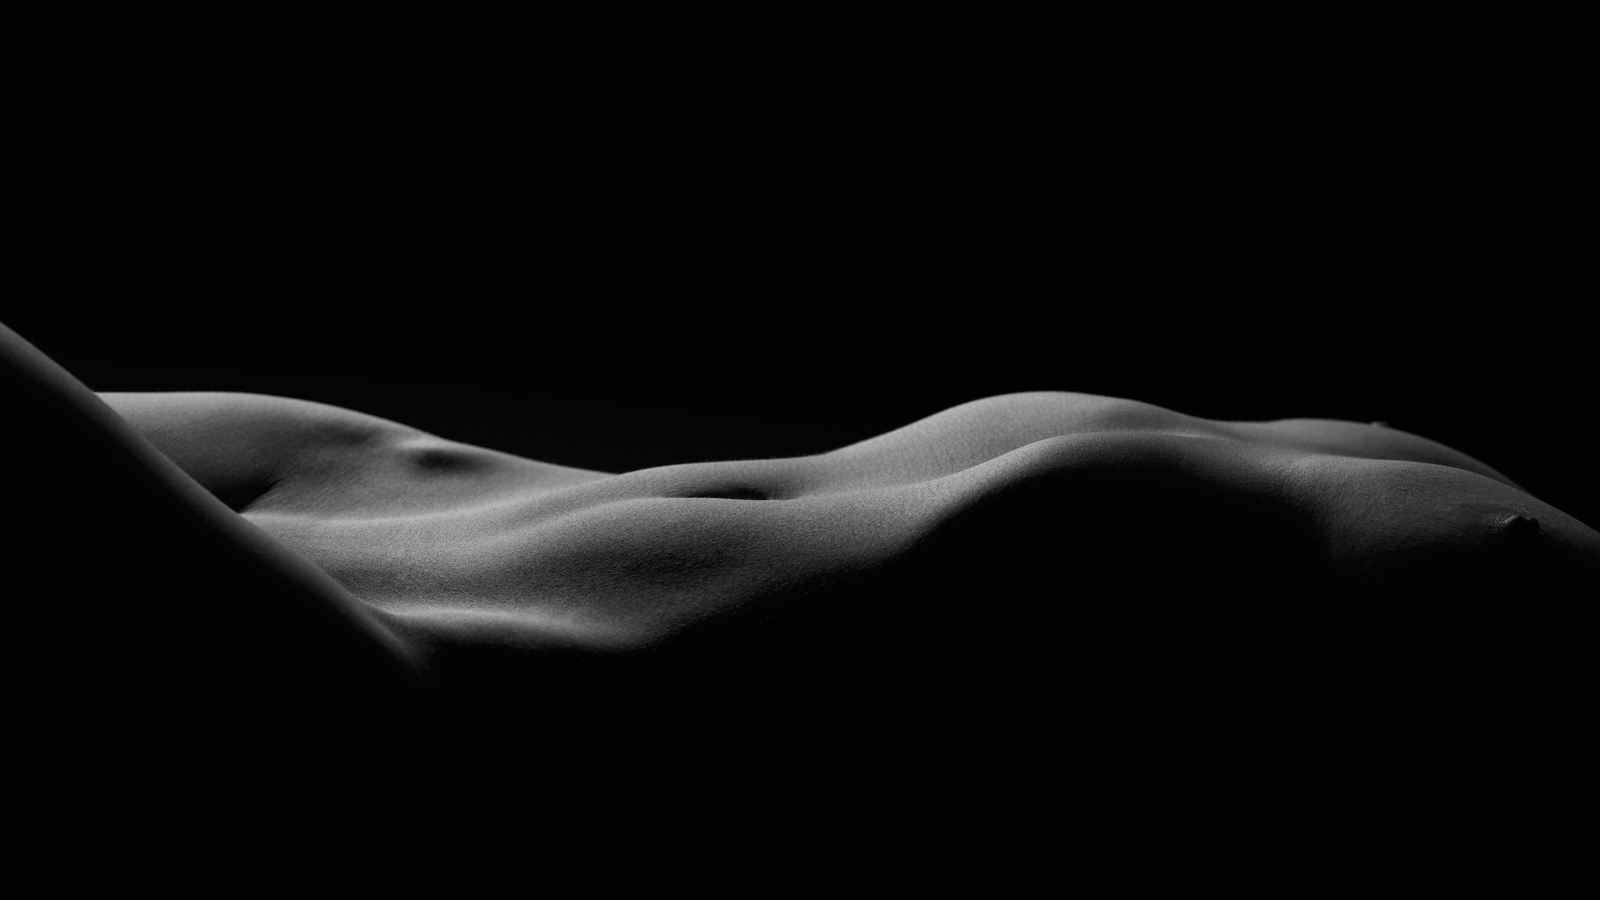 160309_Bodyscapes_S_037.jpg